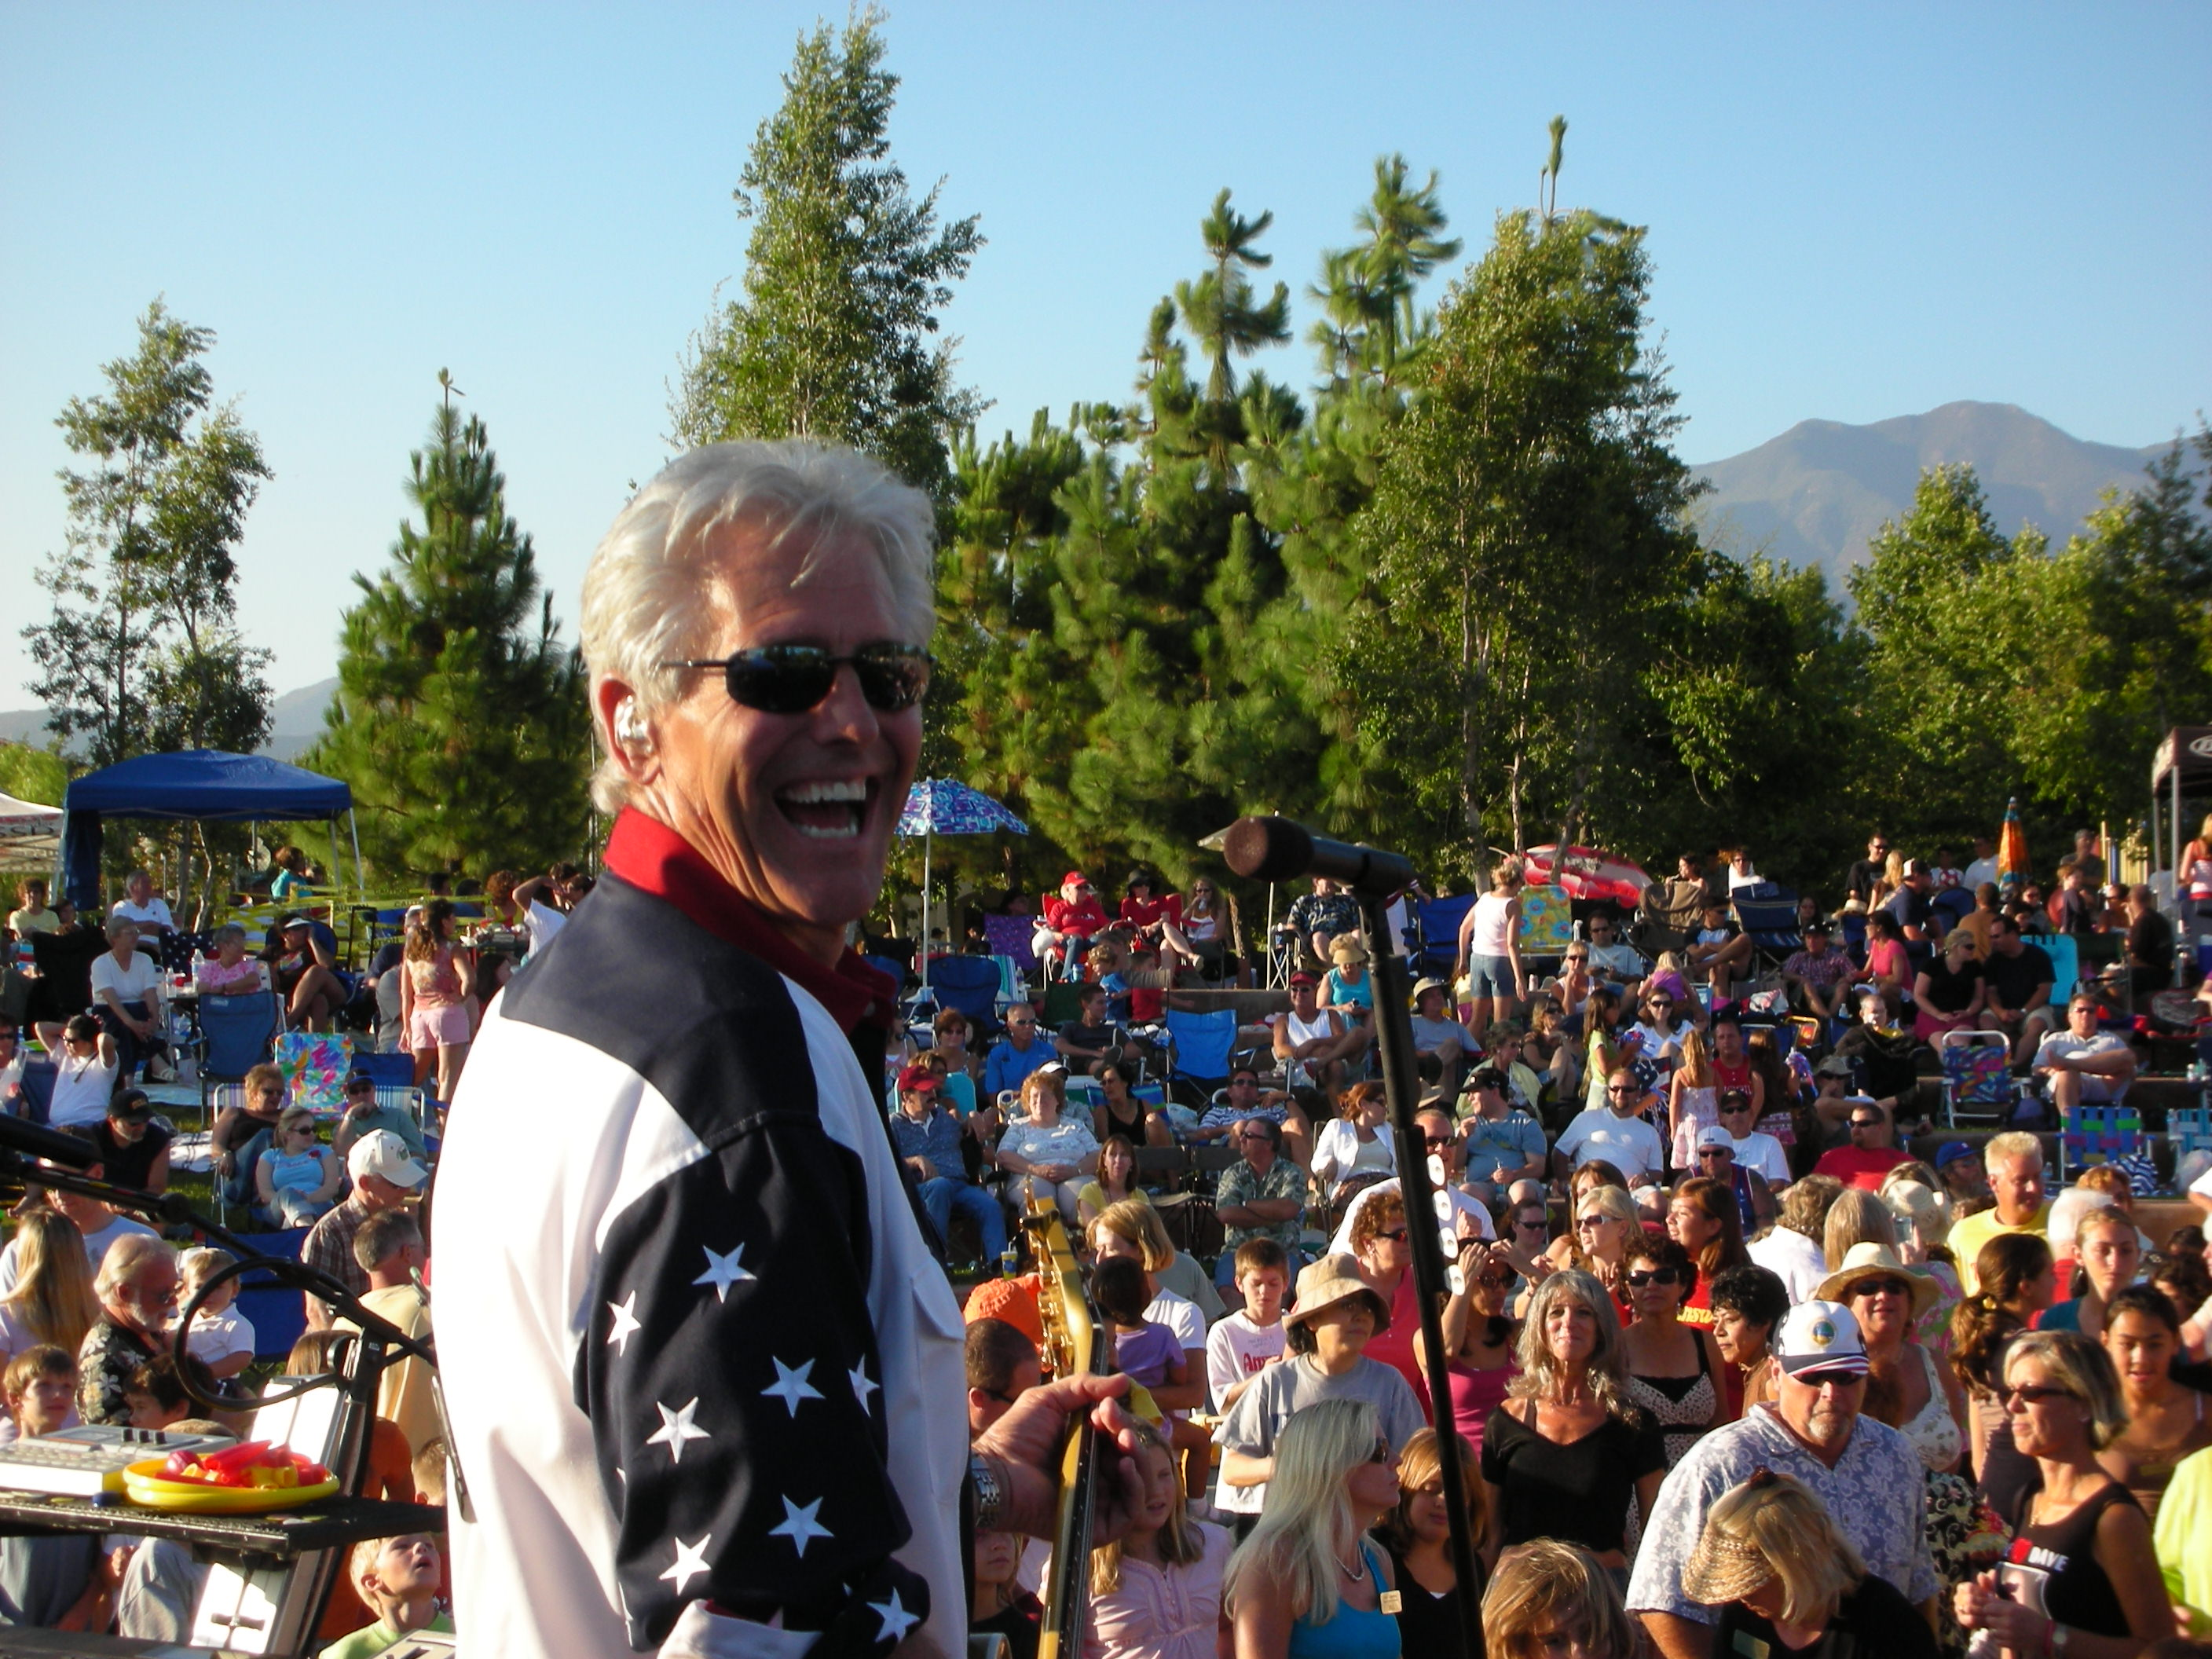 Man in American jacket smiling during outdoor concert